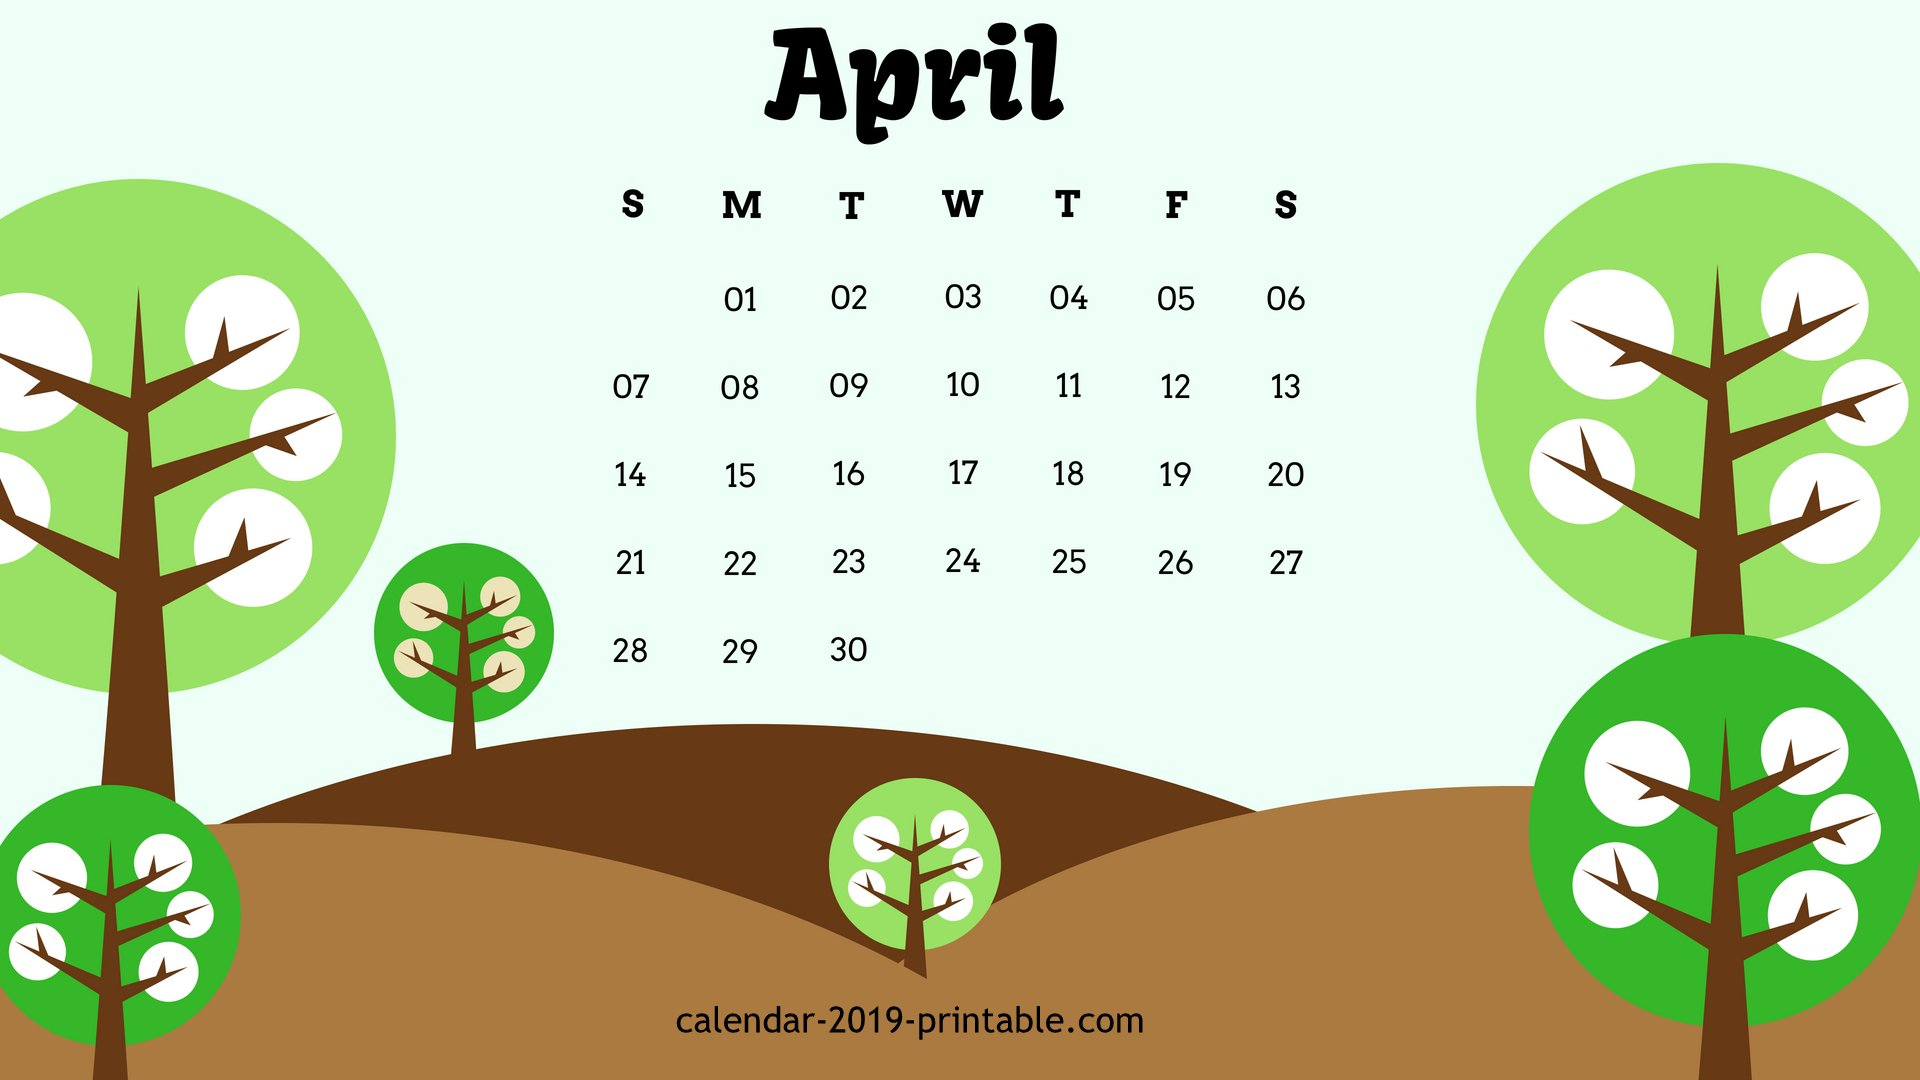 April 2019 Unique Calendar Wallpaper